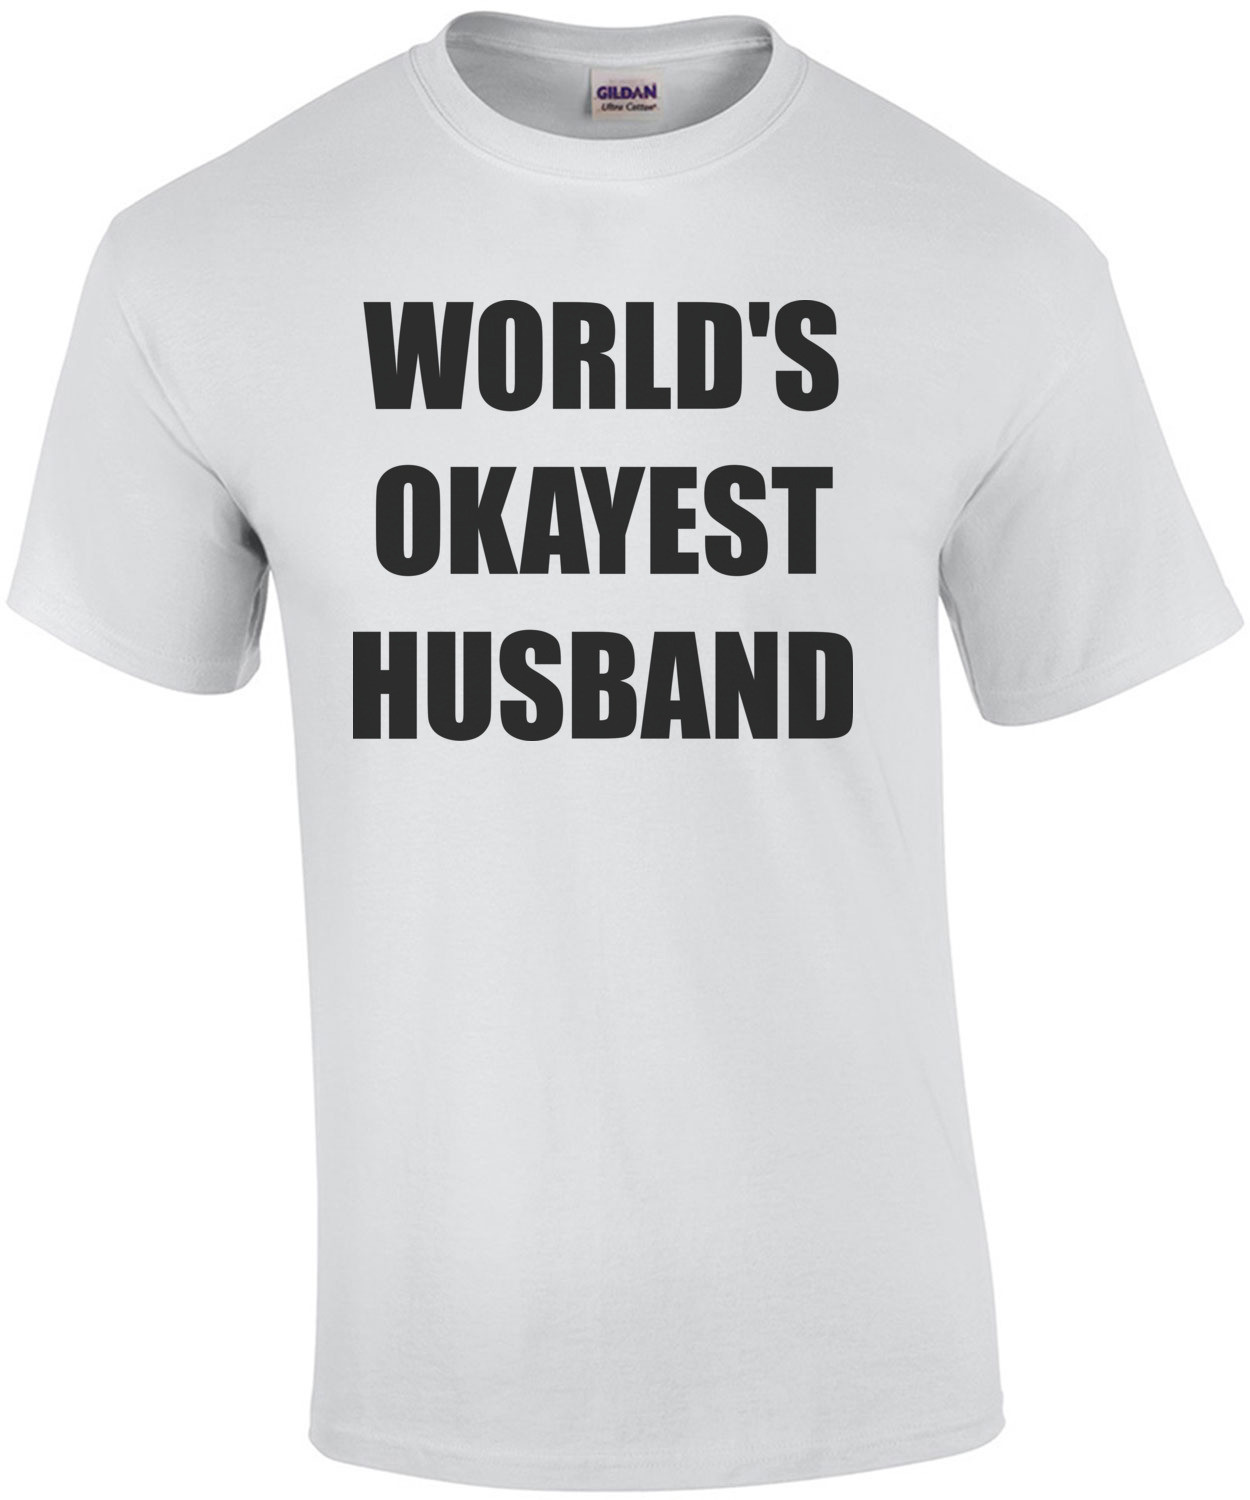 WORLD'S OKAYEST HUSBAND Shirt